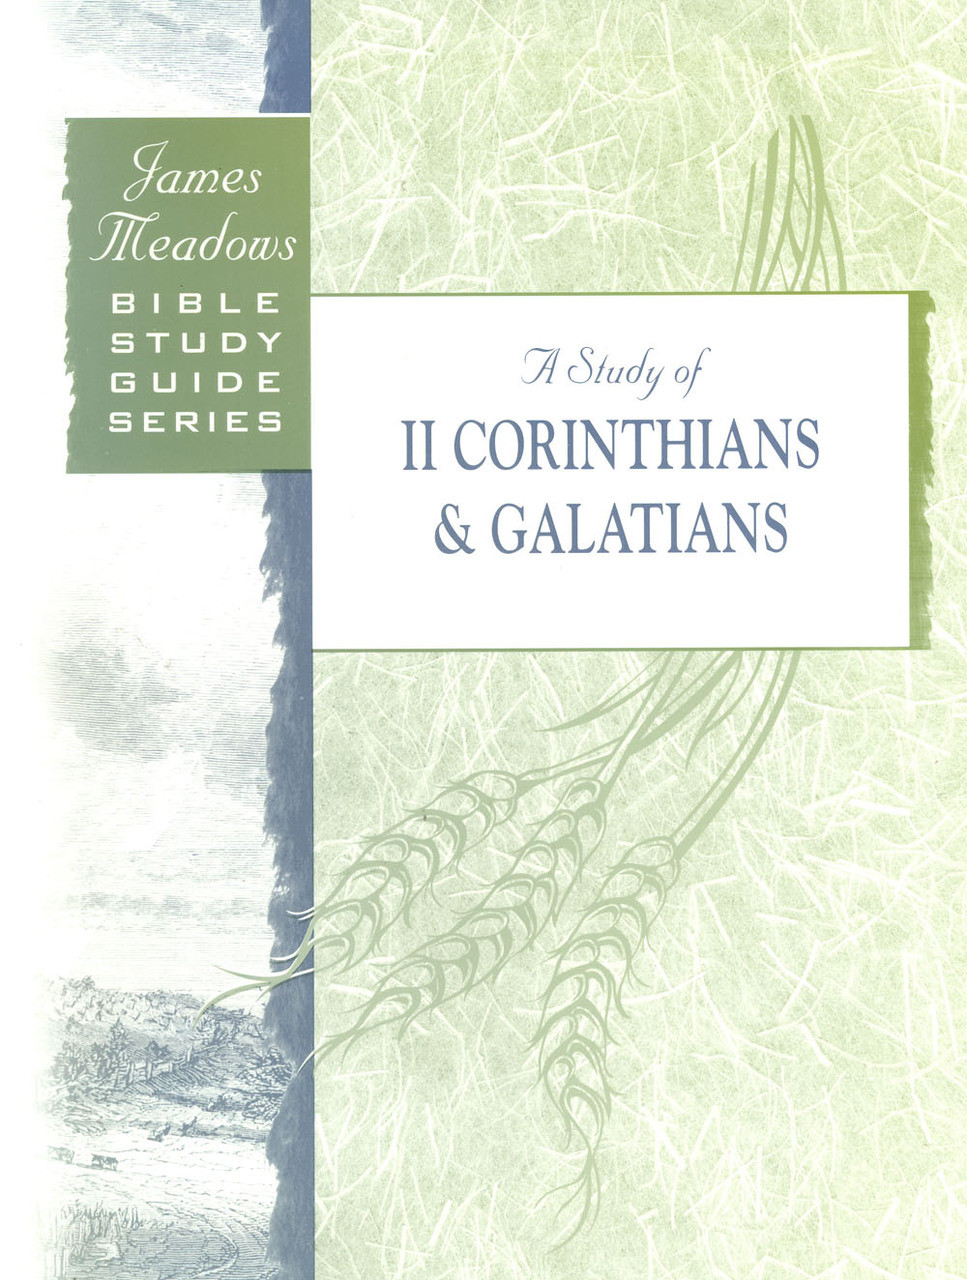 Bible Study Guide Series A Study of II Corinthians and Galatians